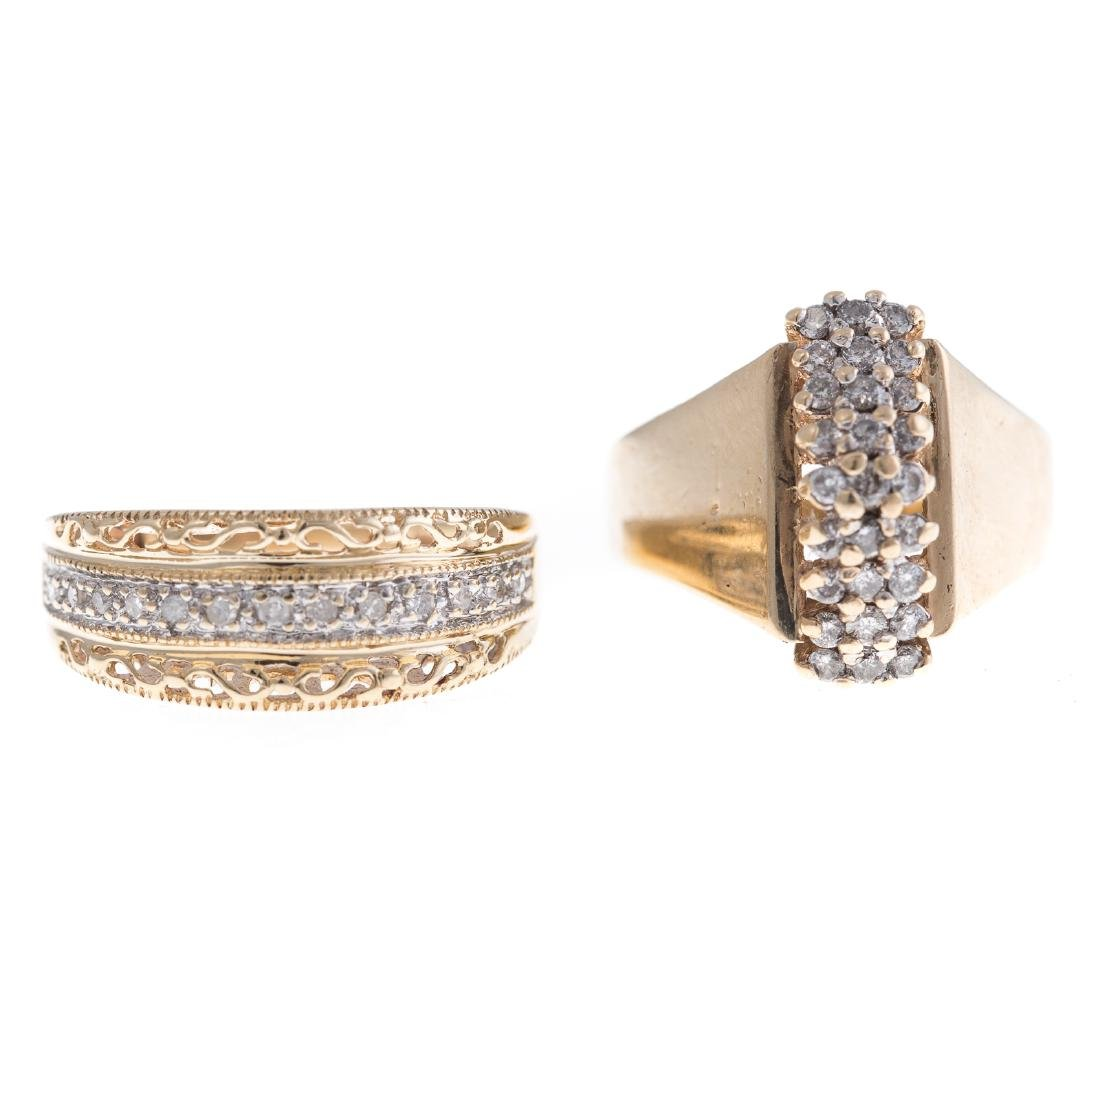 Two Lady's Diamond Rings in 10K Gold